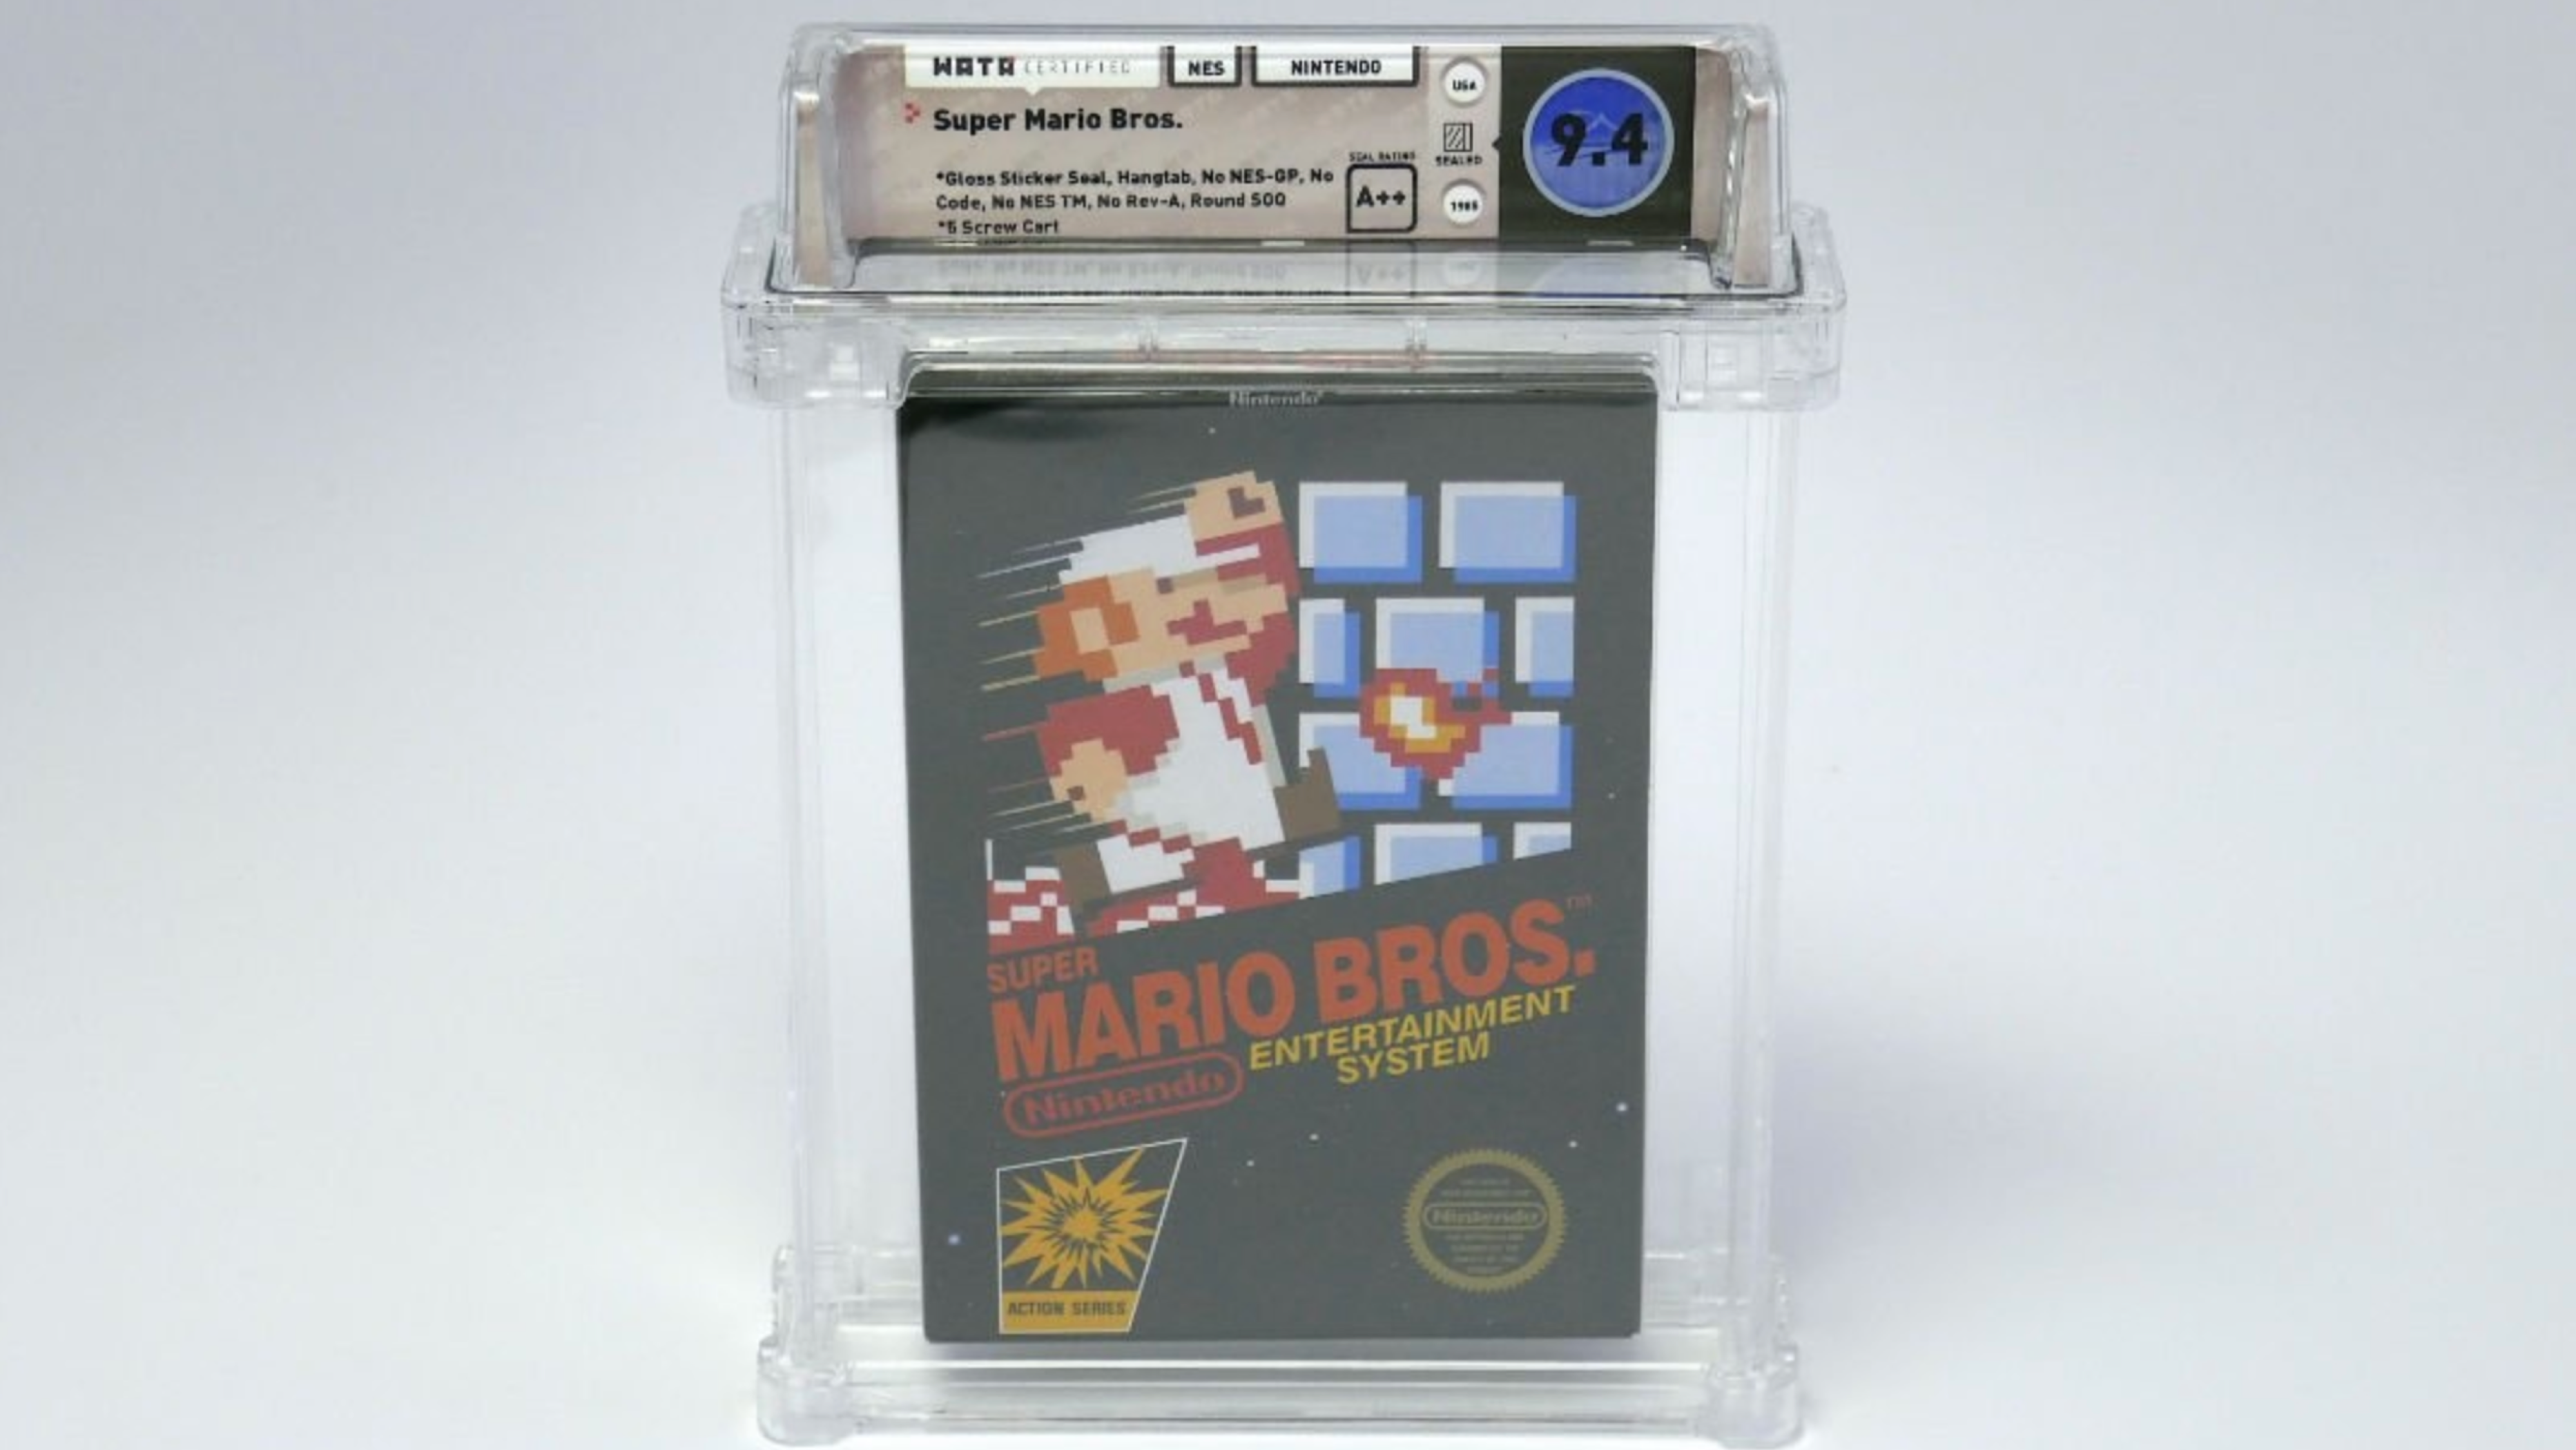 This Rare Copy of Super Mario Bros. Just Sold for $100,000